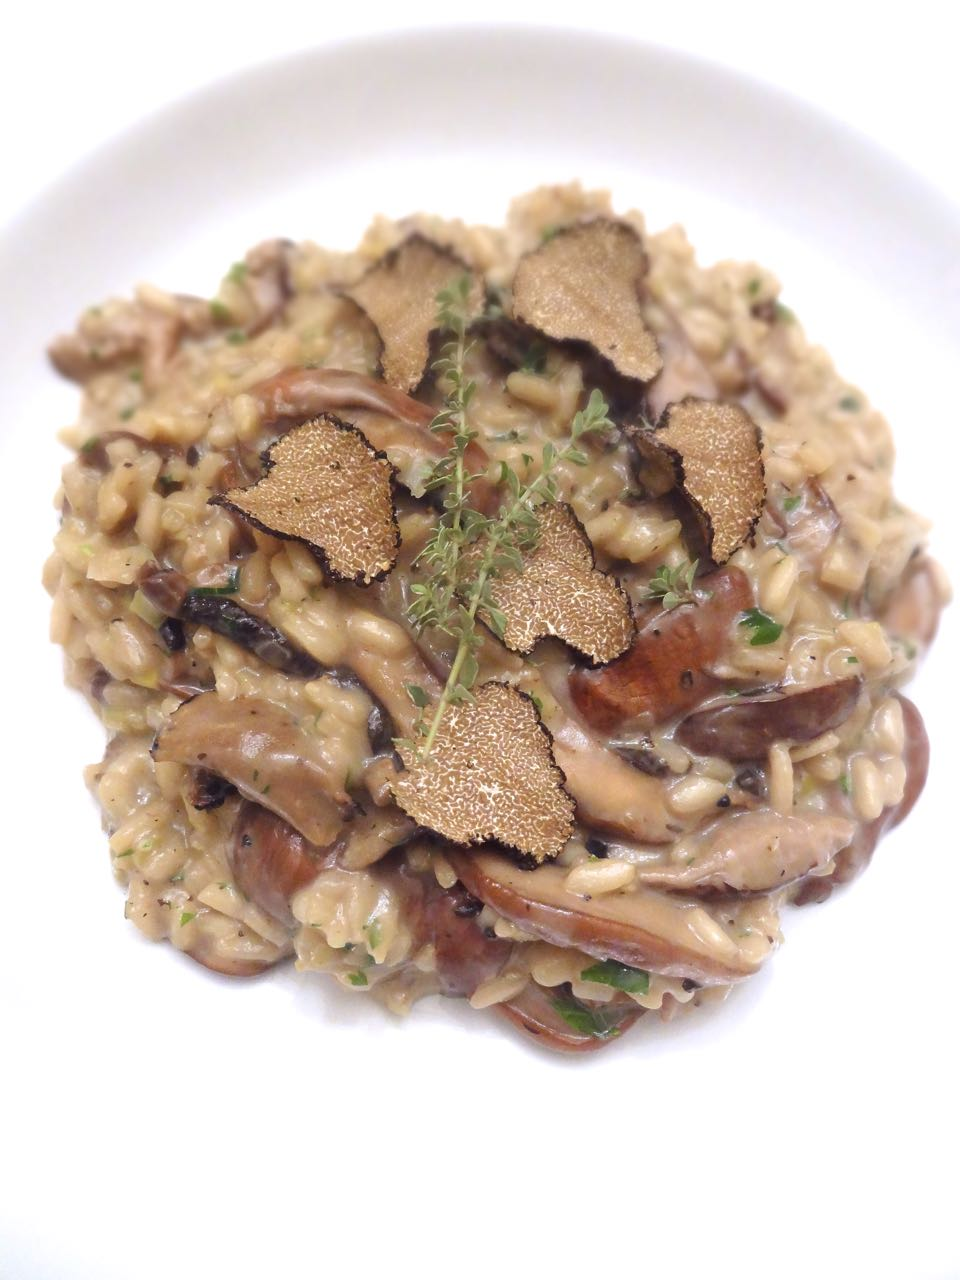 Scrumpdillyicious: Wild Mushroom Risotto with Shaved Black Truffles